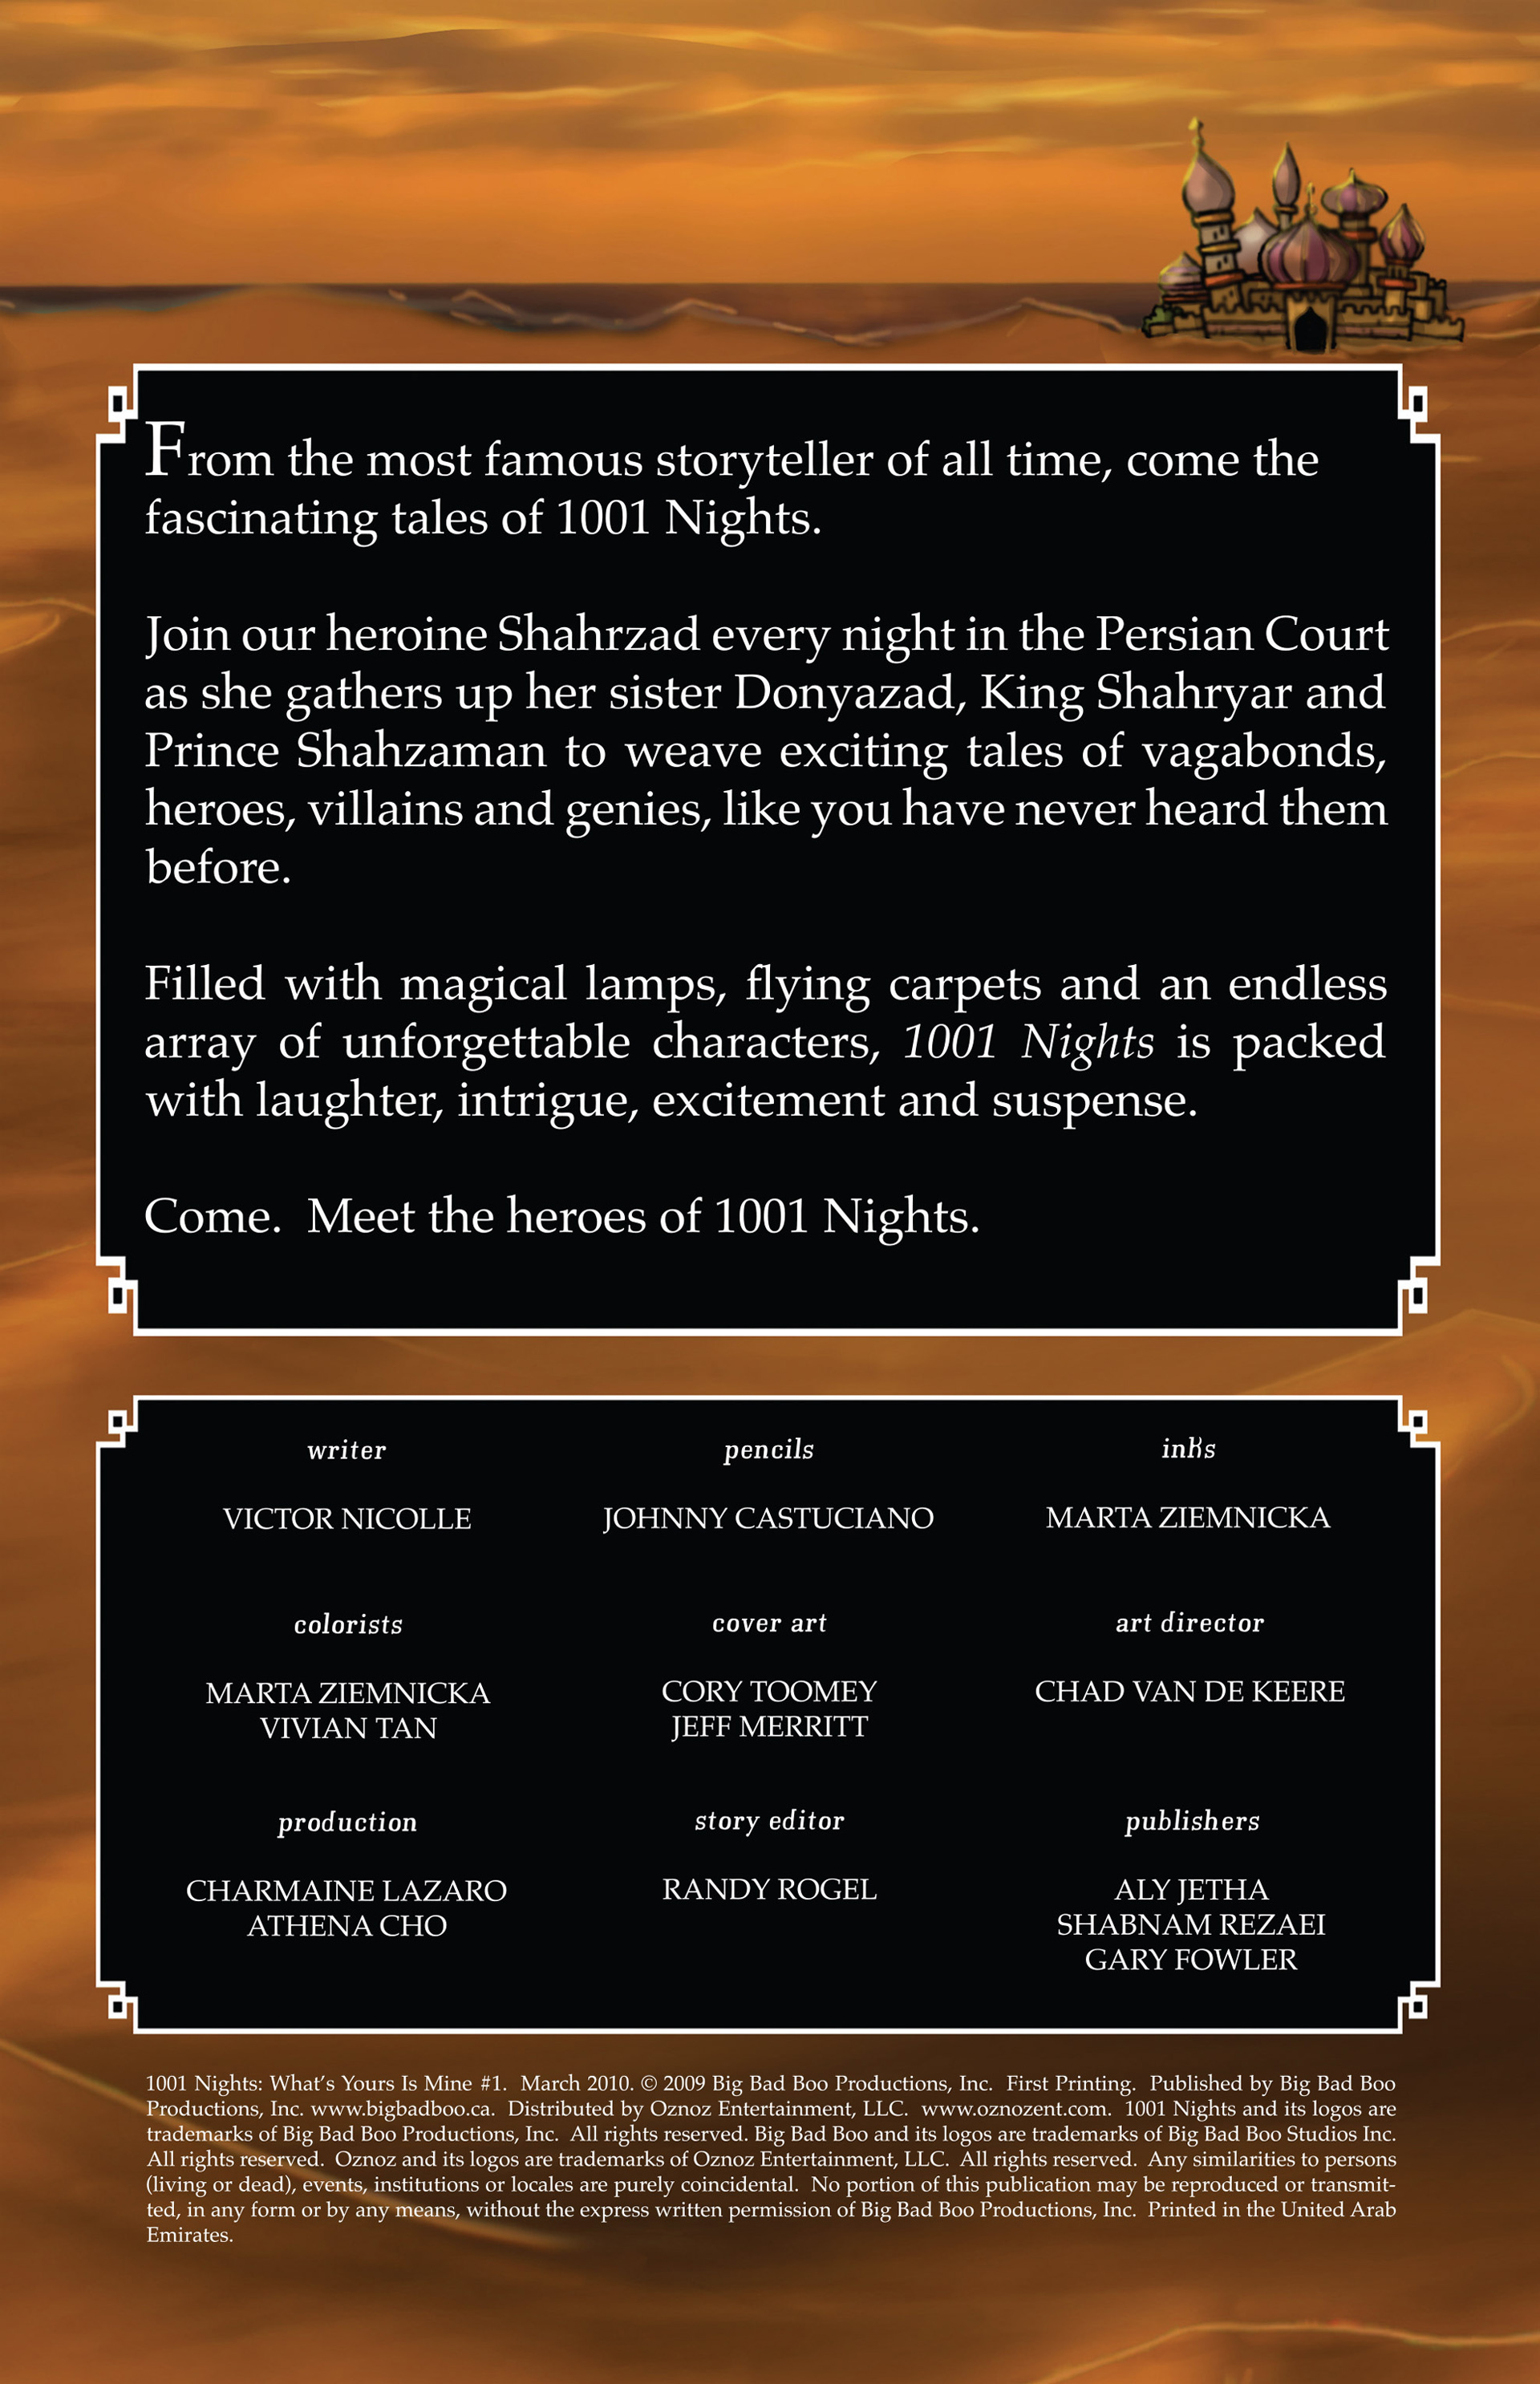 Read online 1001 Nights comic -  Issue #1 - 2